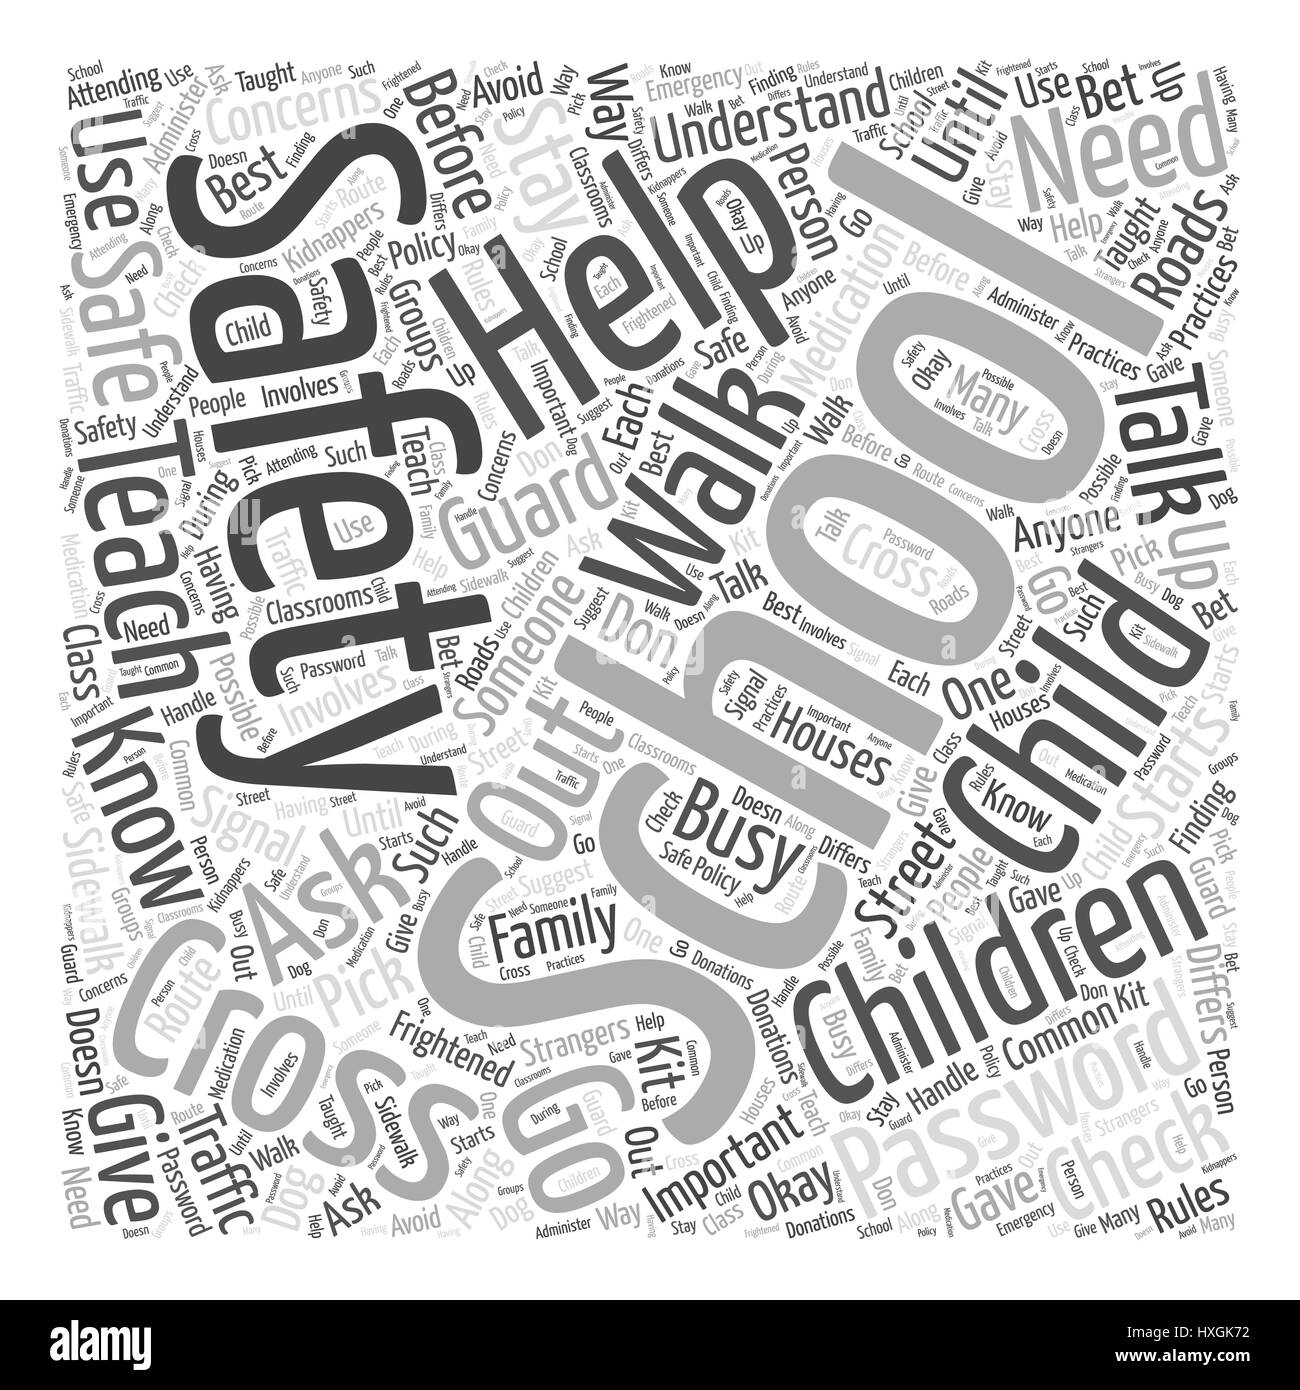 Safety Helps Word Cloud Concept - Stock Image